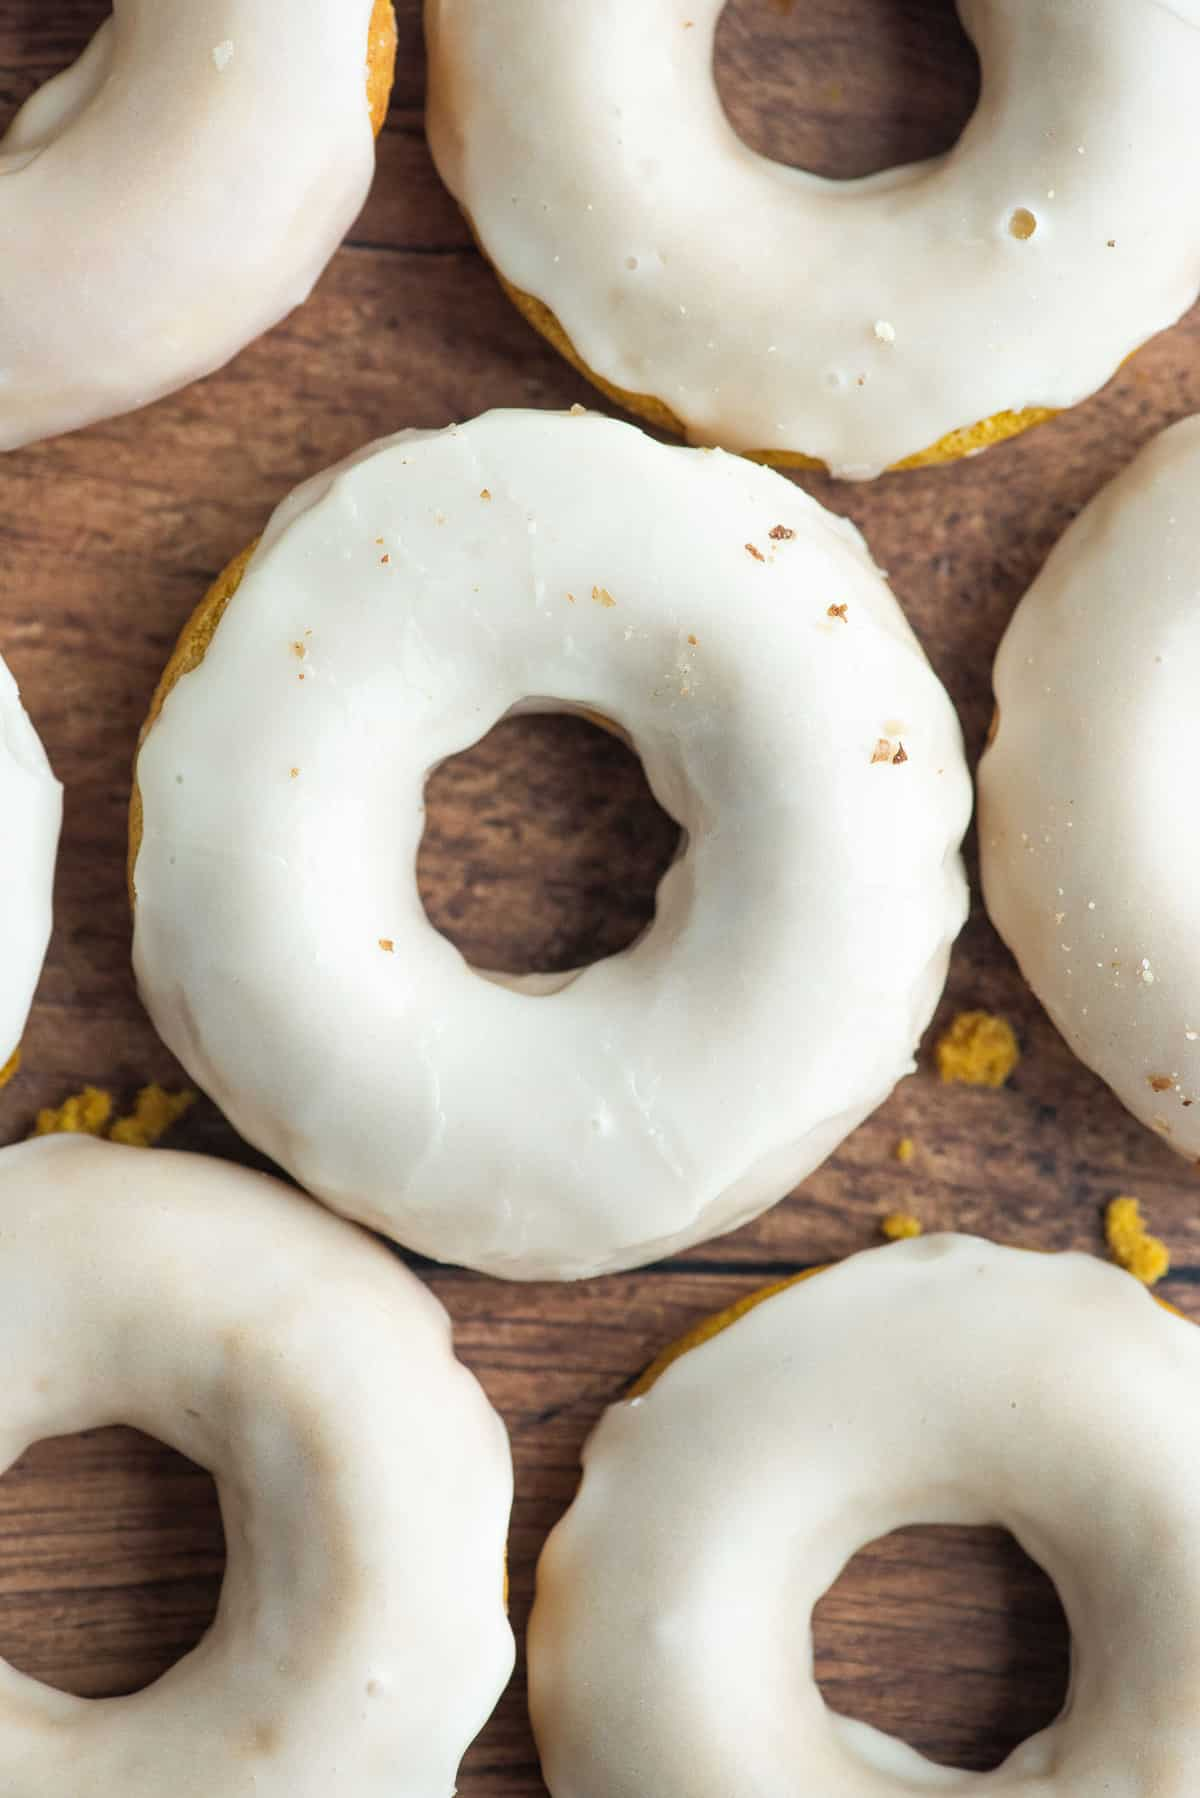 Overhead view of glazed donuts on a wooden surface.